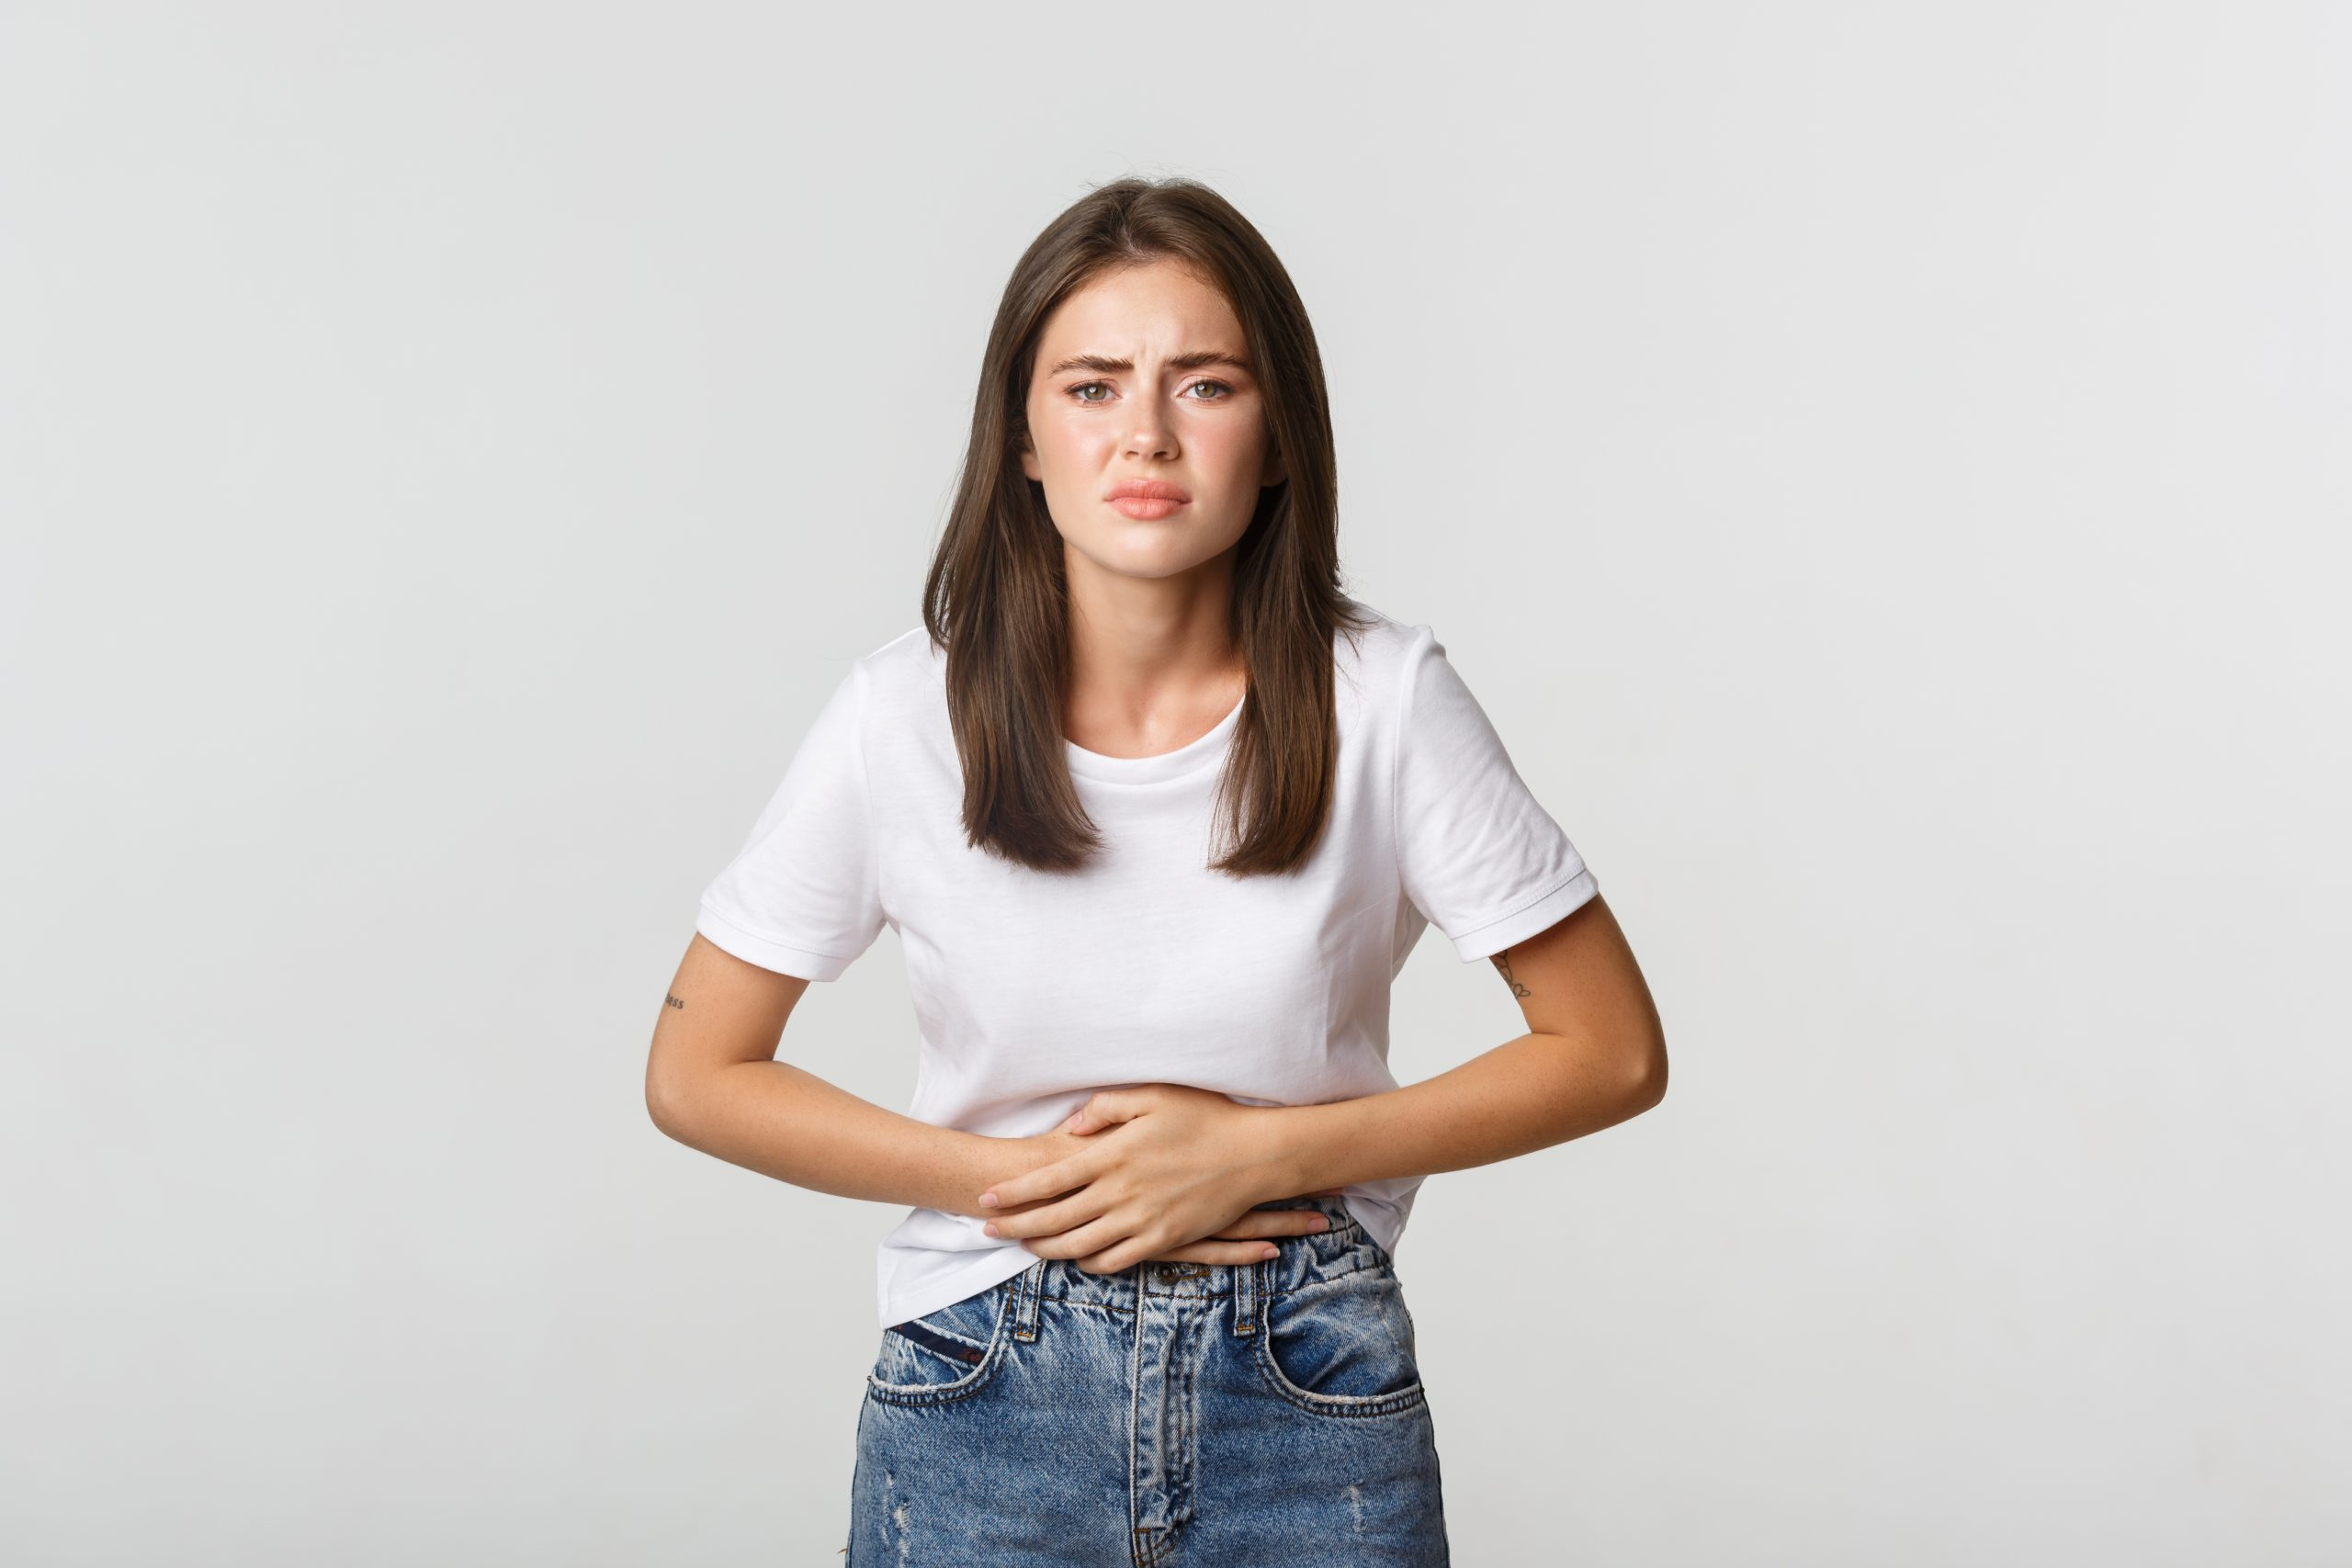 woman having stomach ache bending holding hands belly discomfort from menstrual cramps girl feeling nauseous scaled